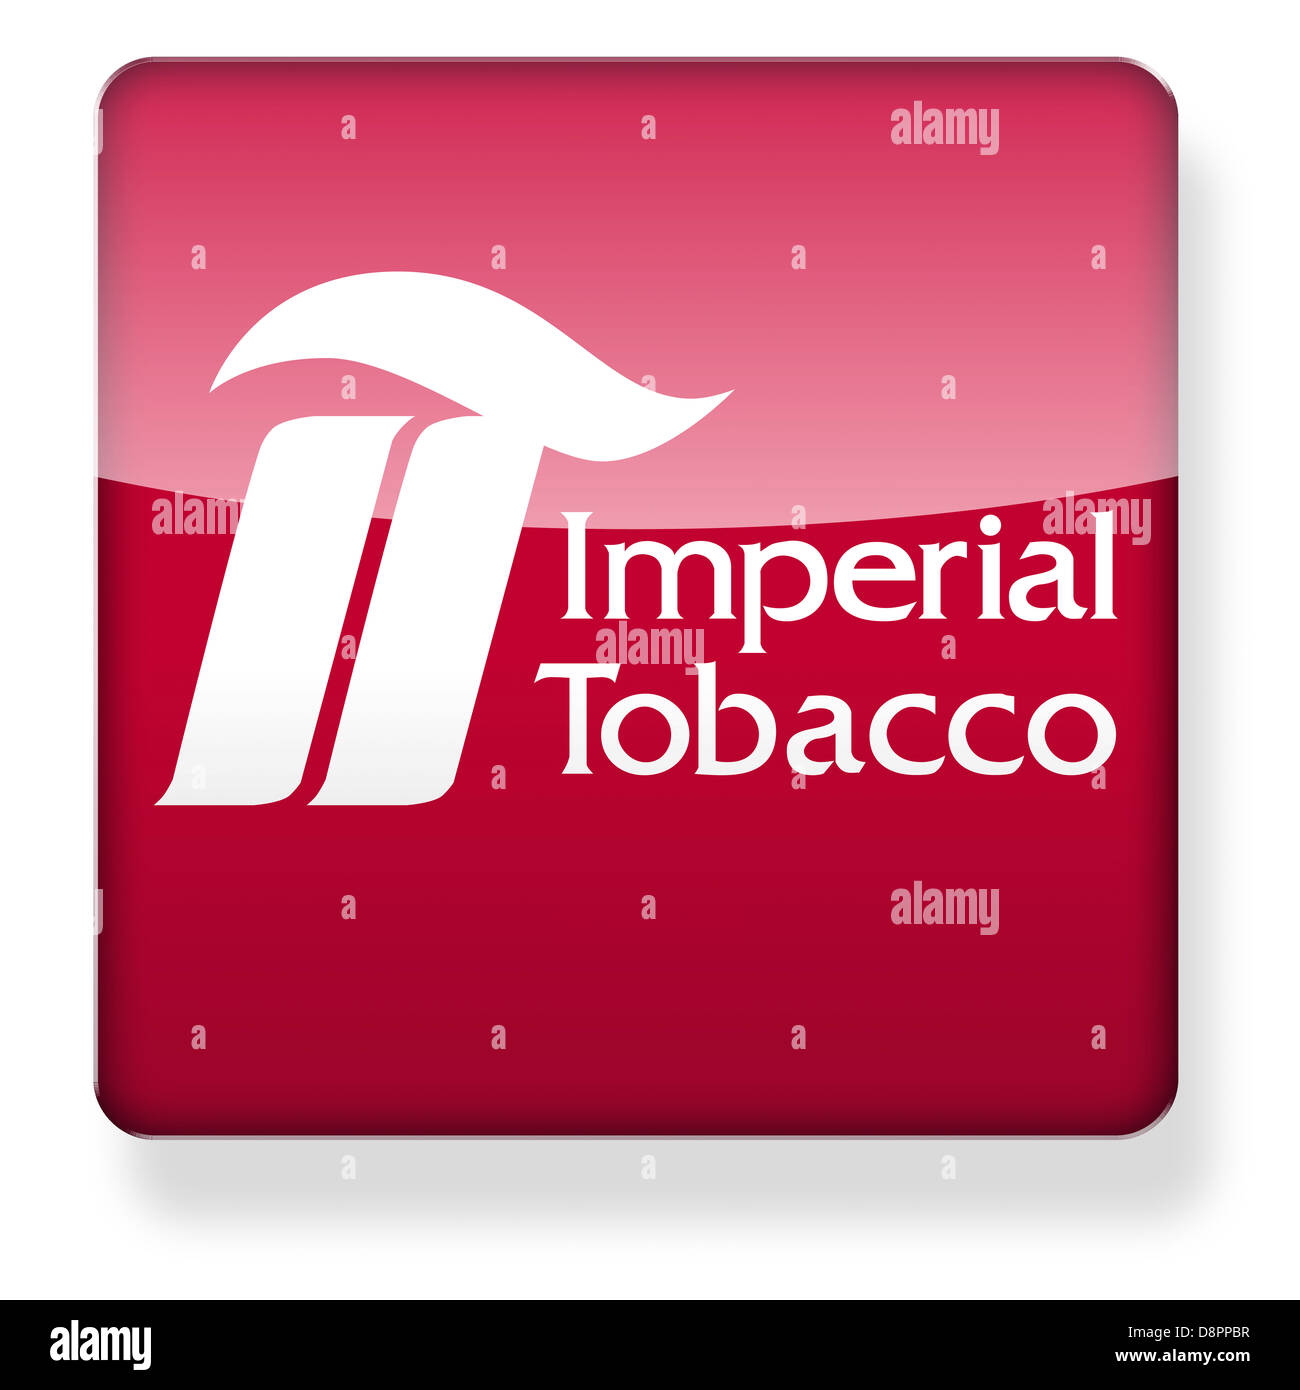 Imperial Tobacco Group logo as an app icon. Clipping path included ... 8b6148e1564